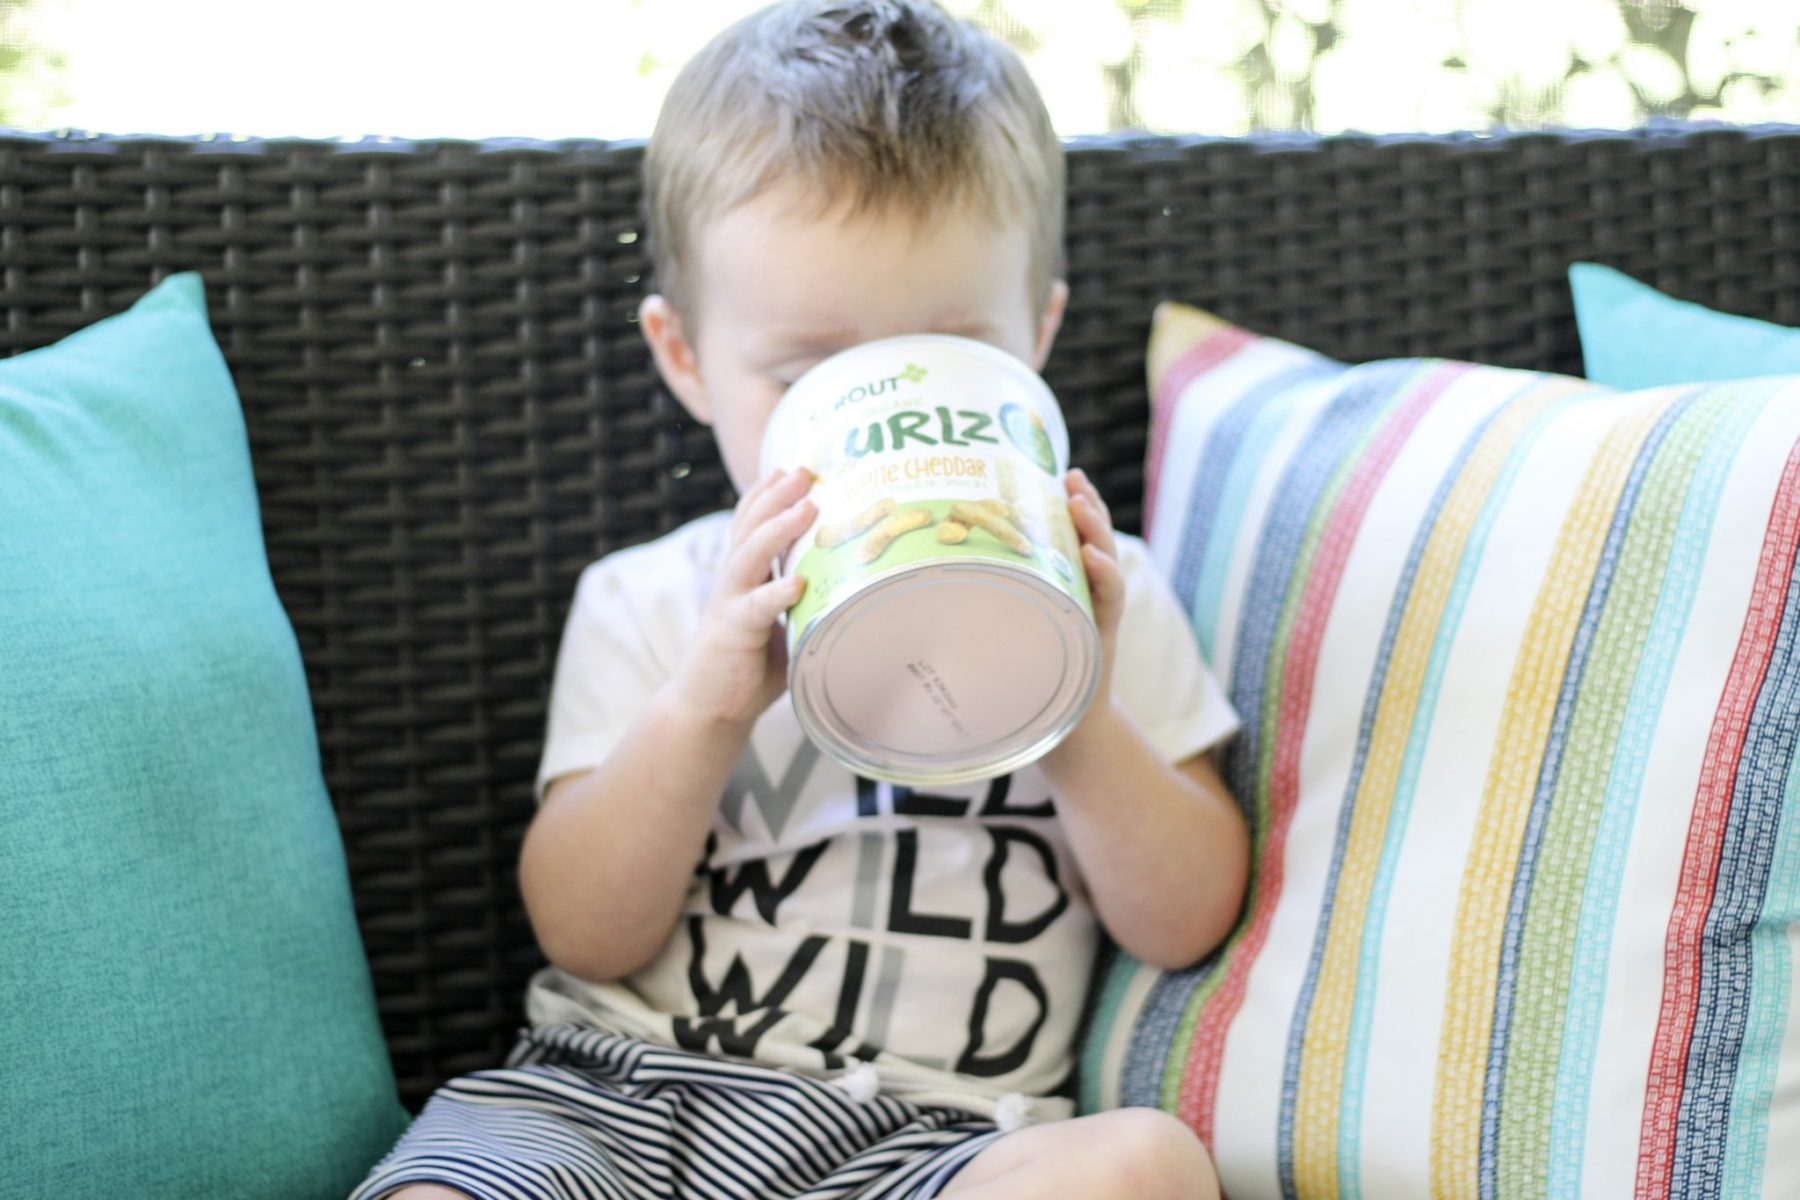 organic plant-based protein for babies and toddlers, on the go snacks, organic snacks for kids, organic baby food pouches, grab and go snacks, diary free snacks for kids, vegan snacks for kids